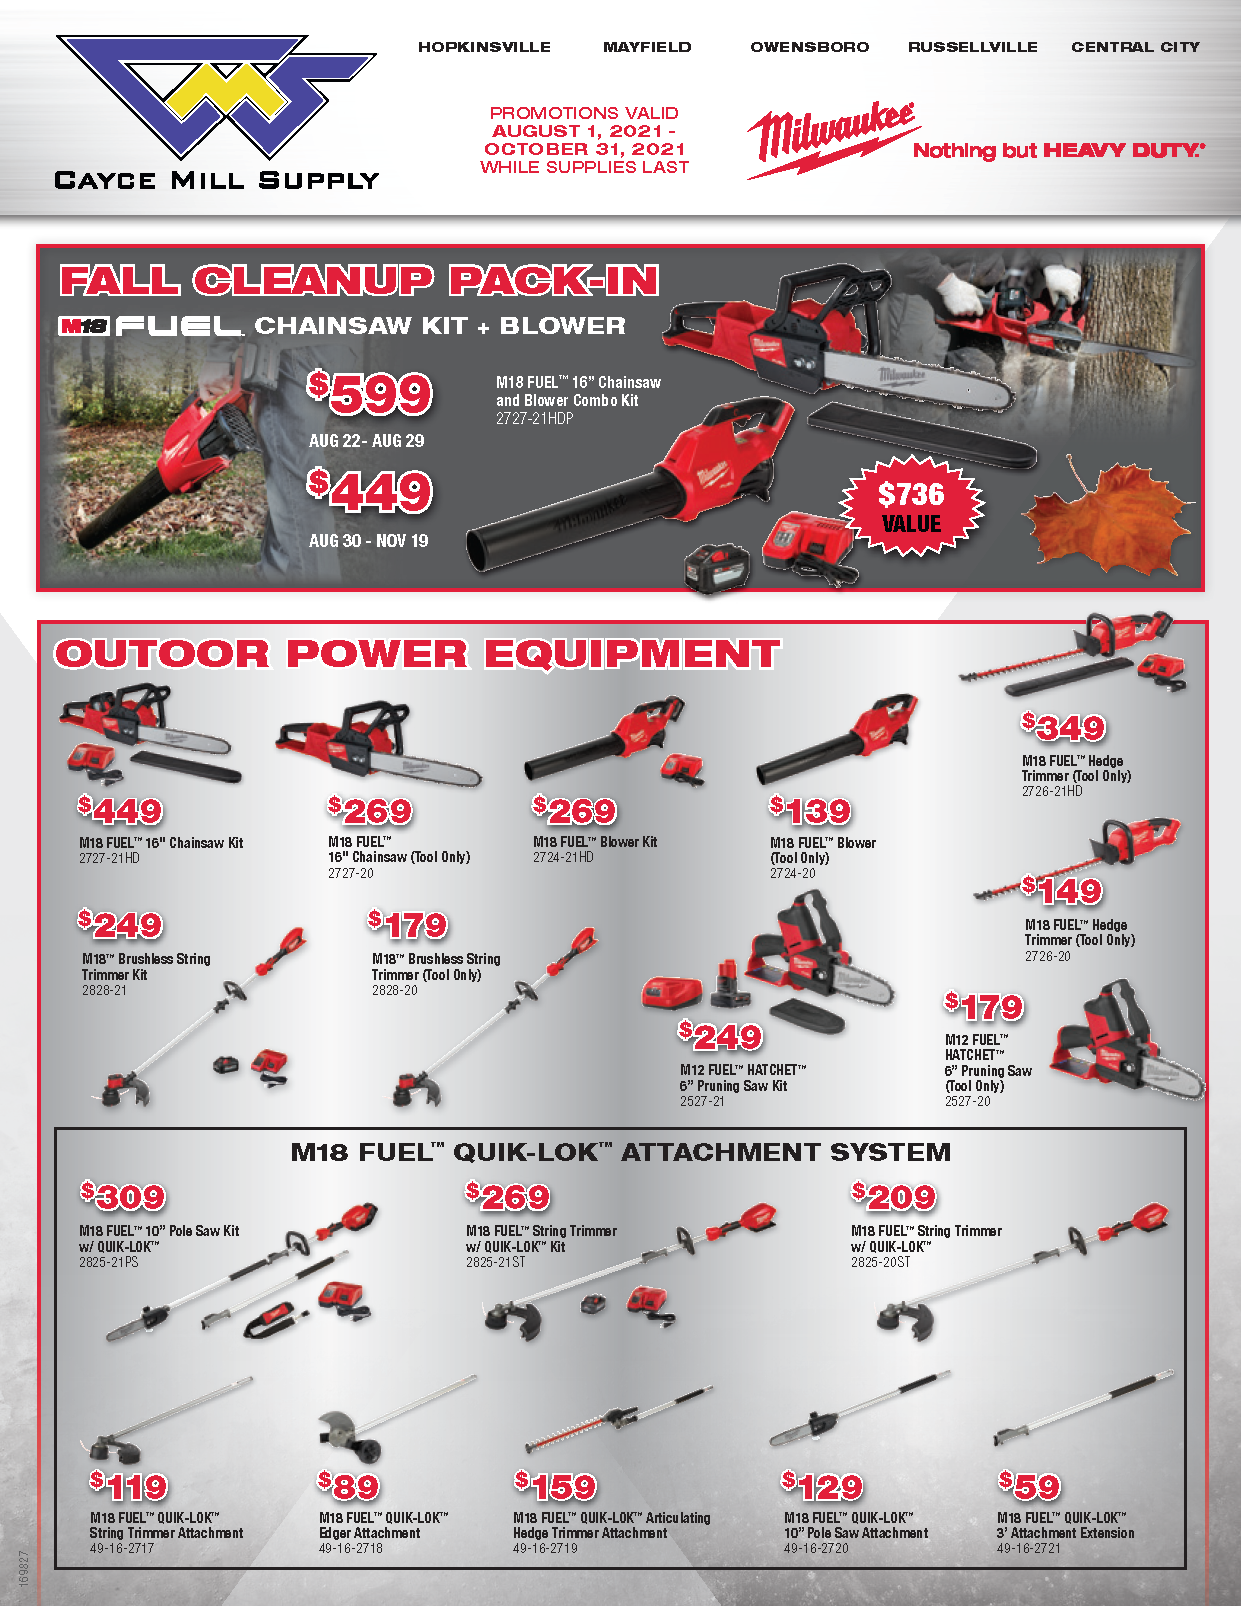 Milwaukee Tool Promo – Fall Cleanup Pack-In